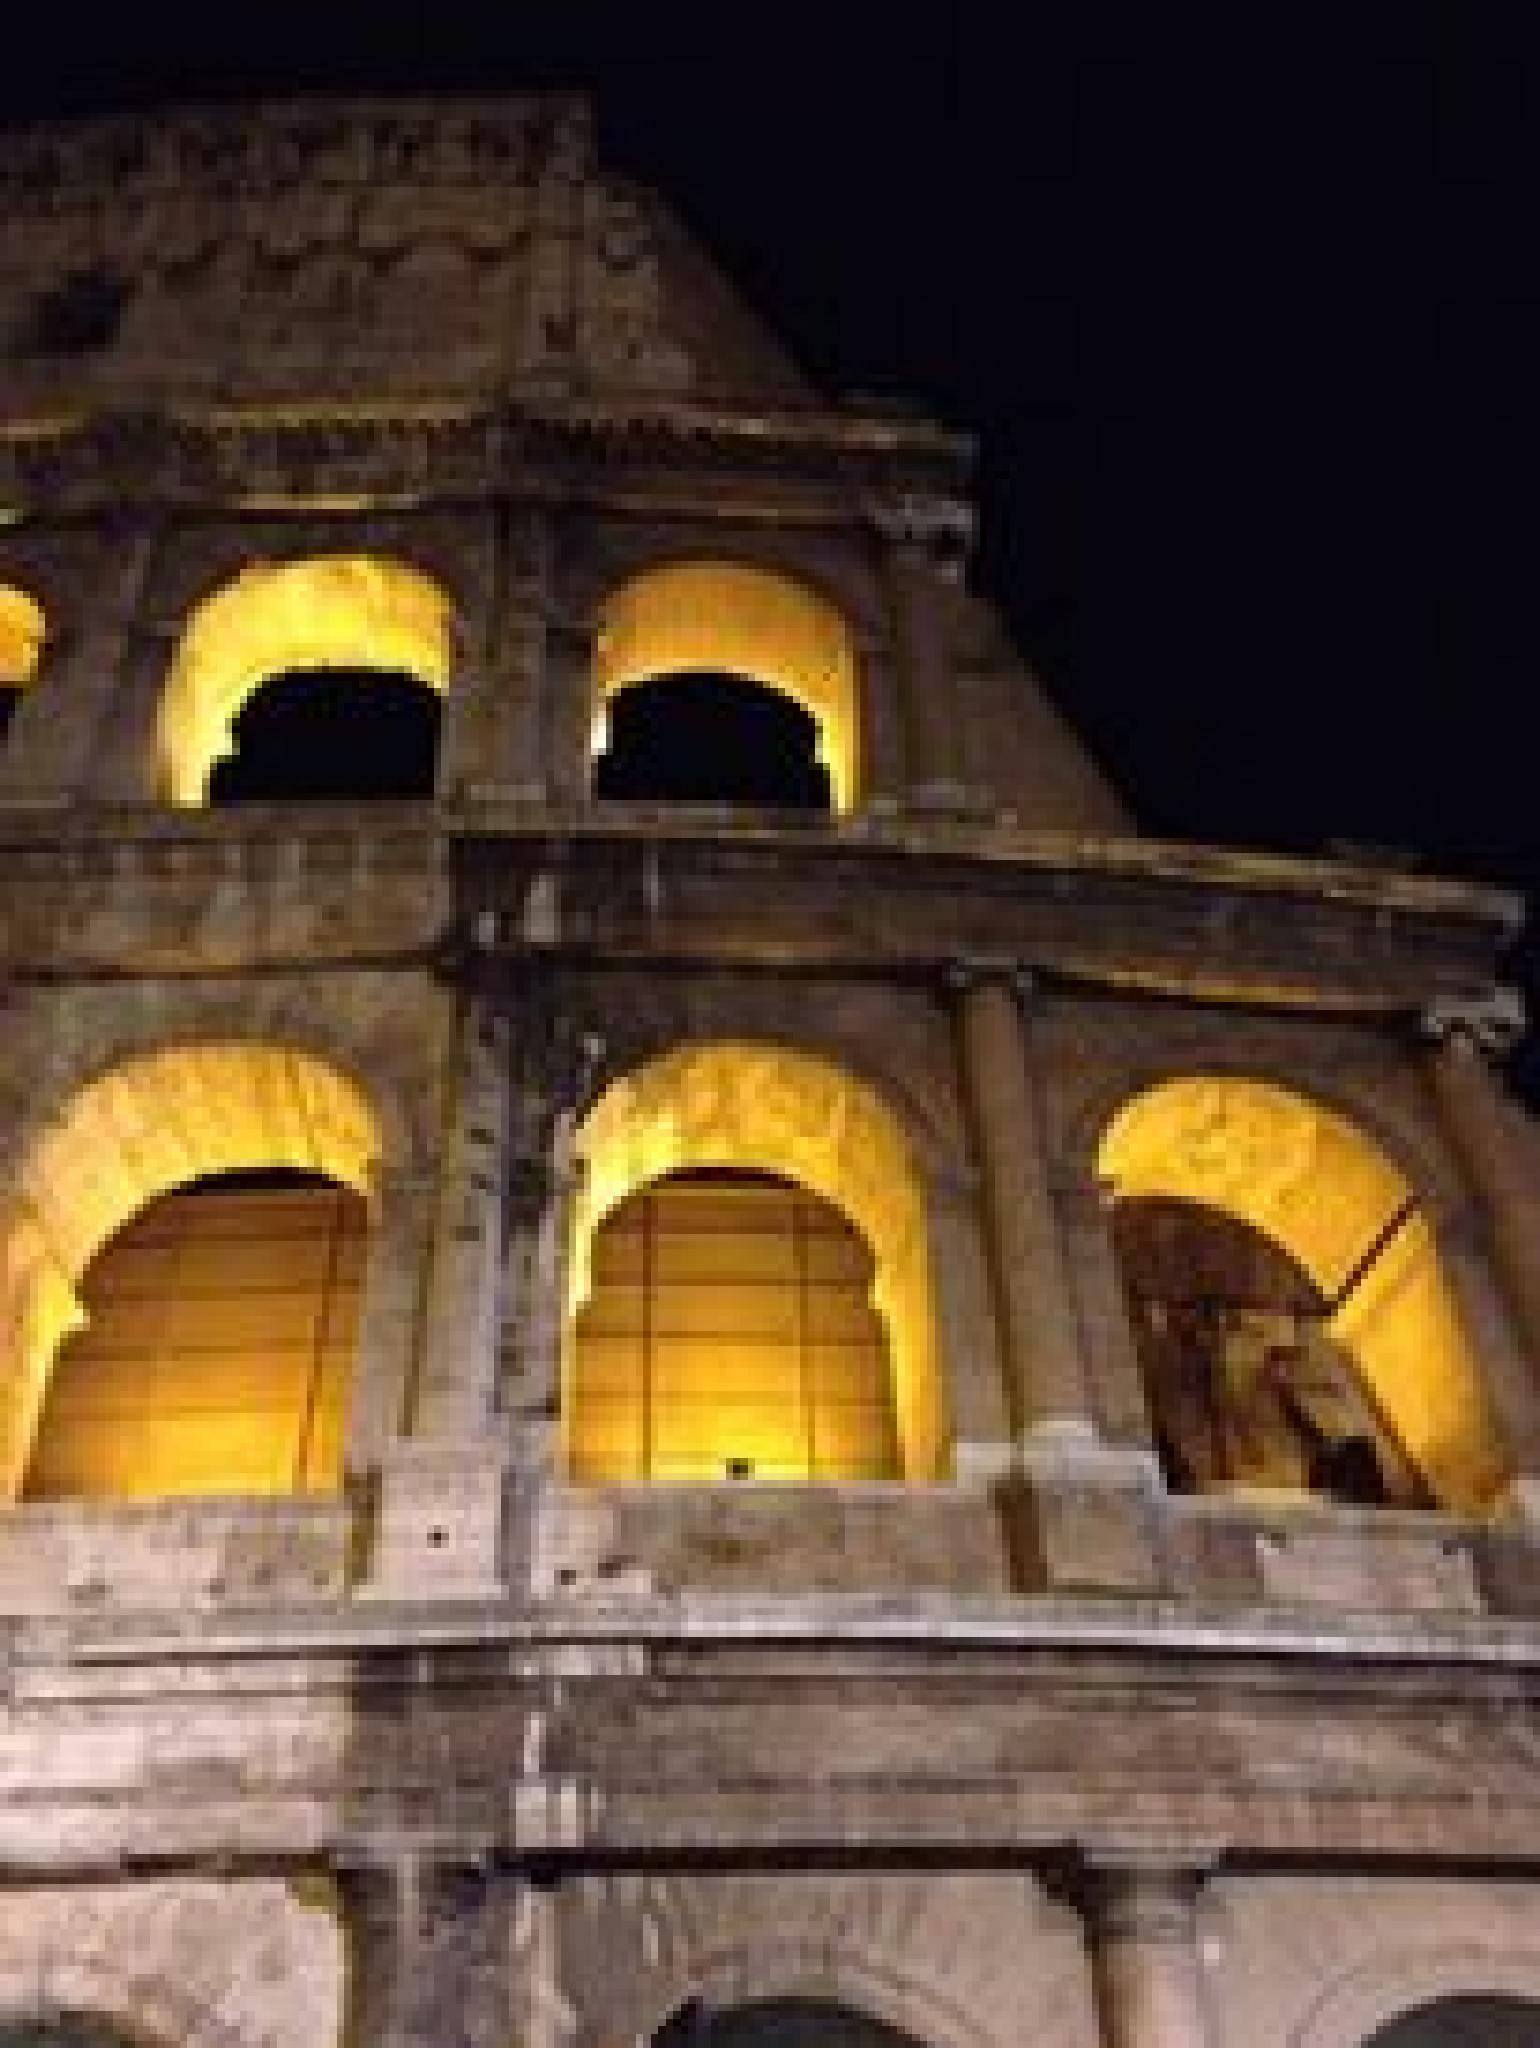 The Colosseum at night, Rome by grossiroma